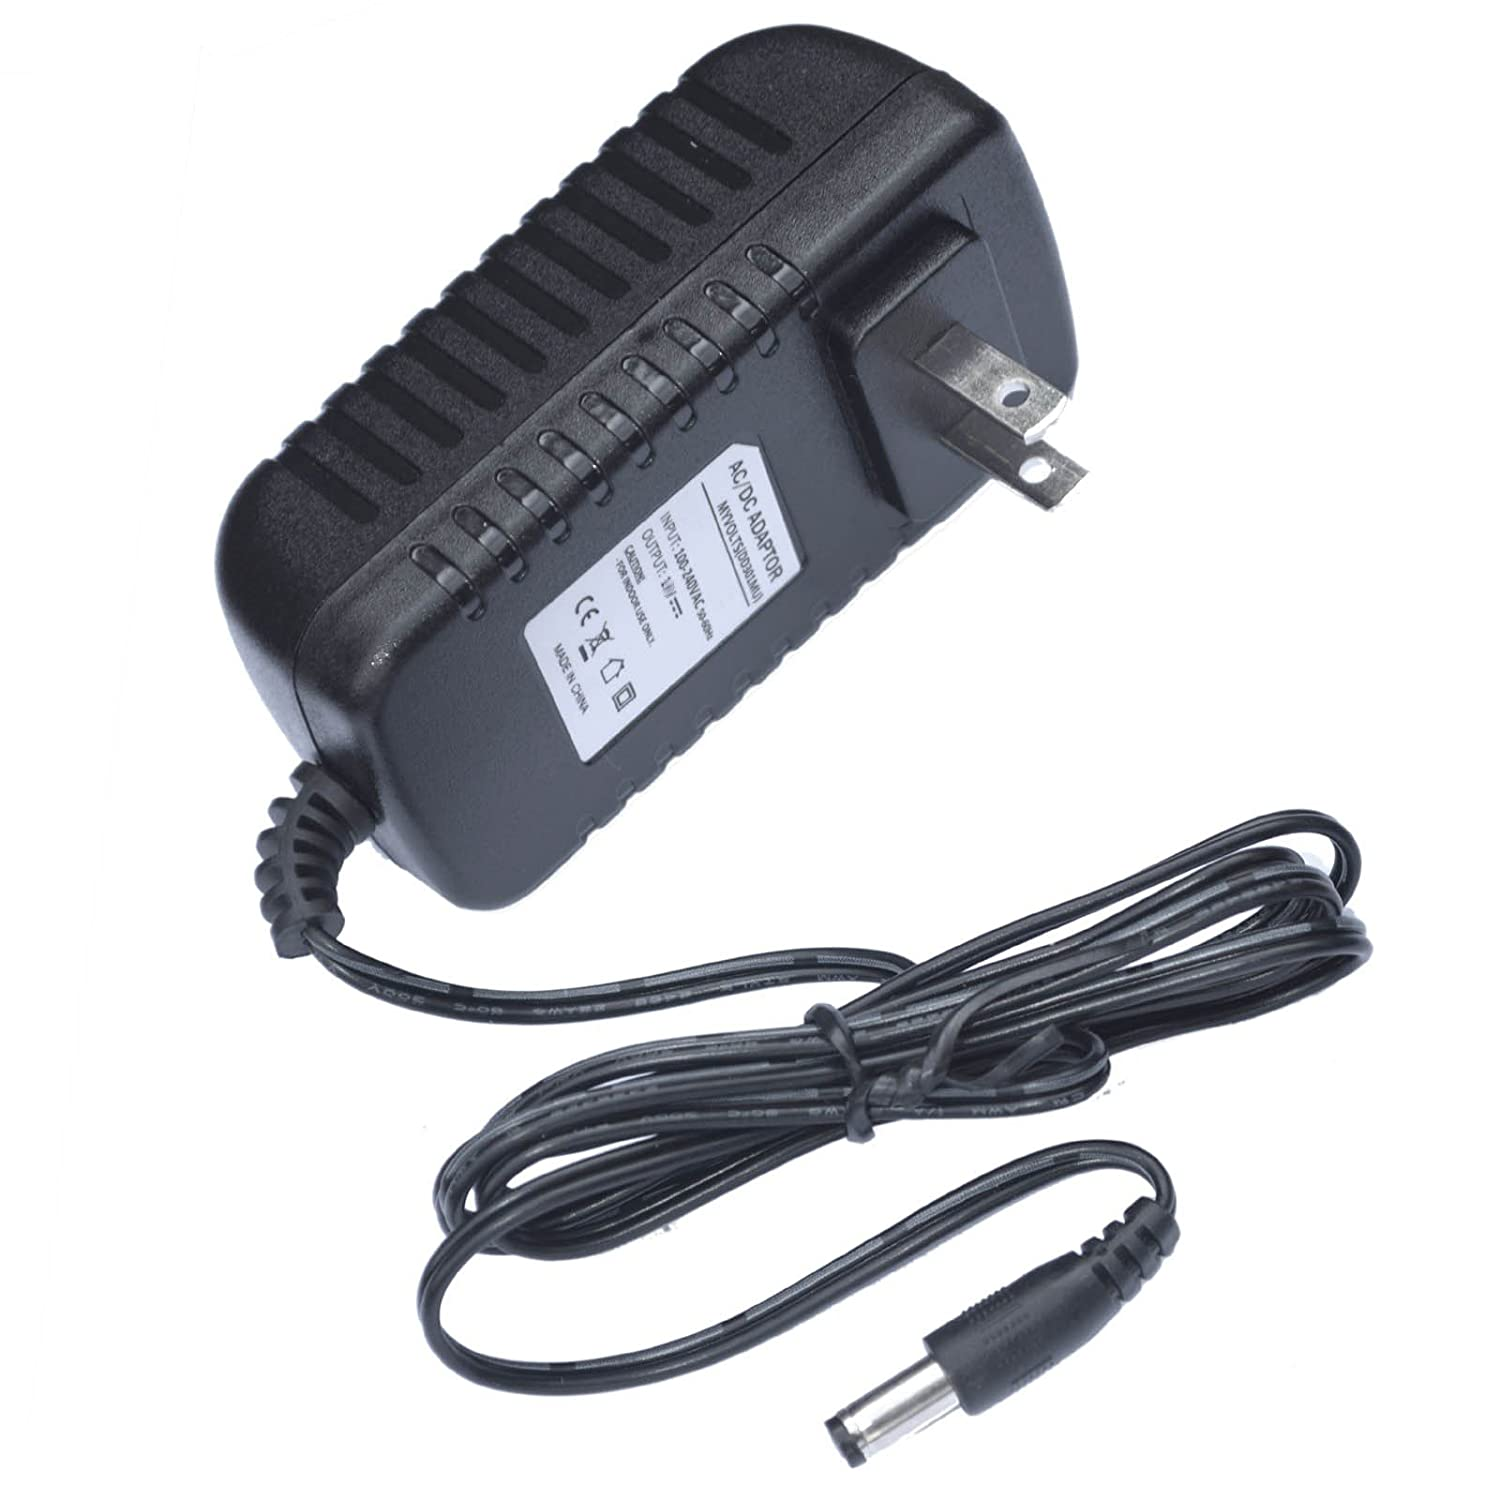 5V Snom 715 VoIP phone replacement power supply adaptor - US plug MyVolts